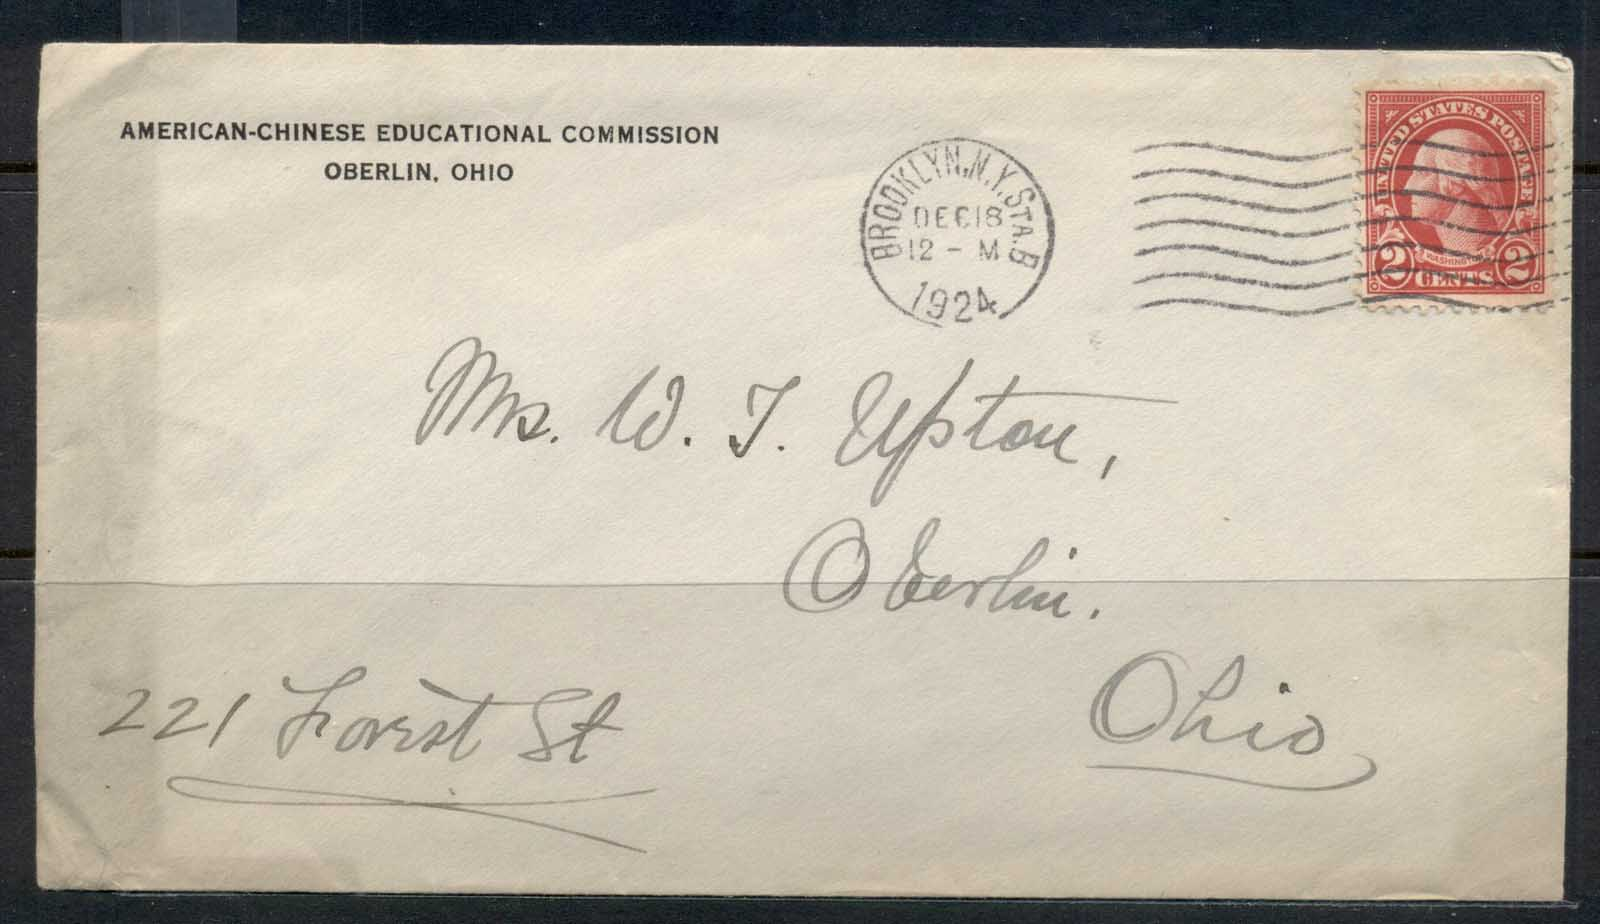 USA 1922-38 Fourth Bureau Washington 2c American-Chinese Educational Commission corner card, Brooklyn 1924 cover